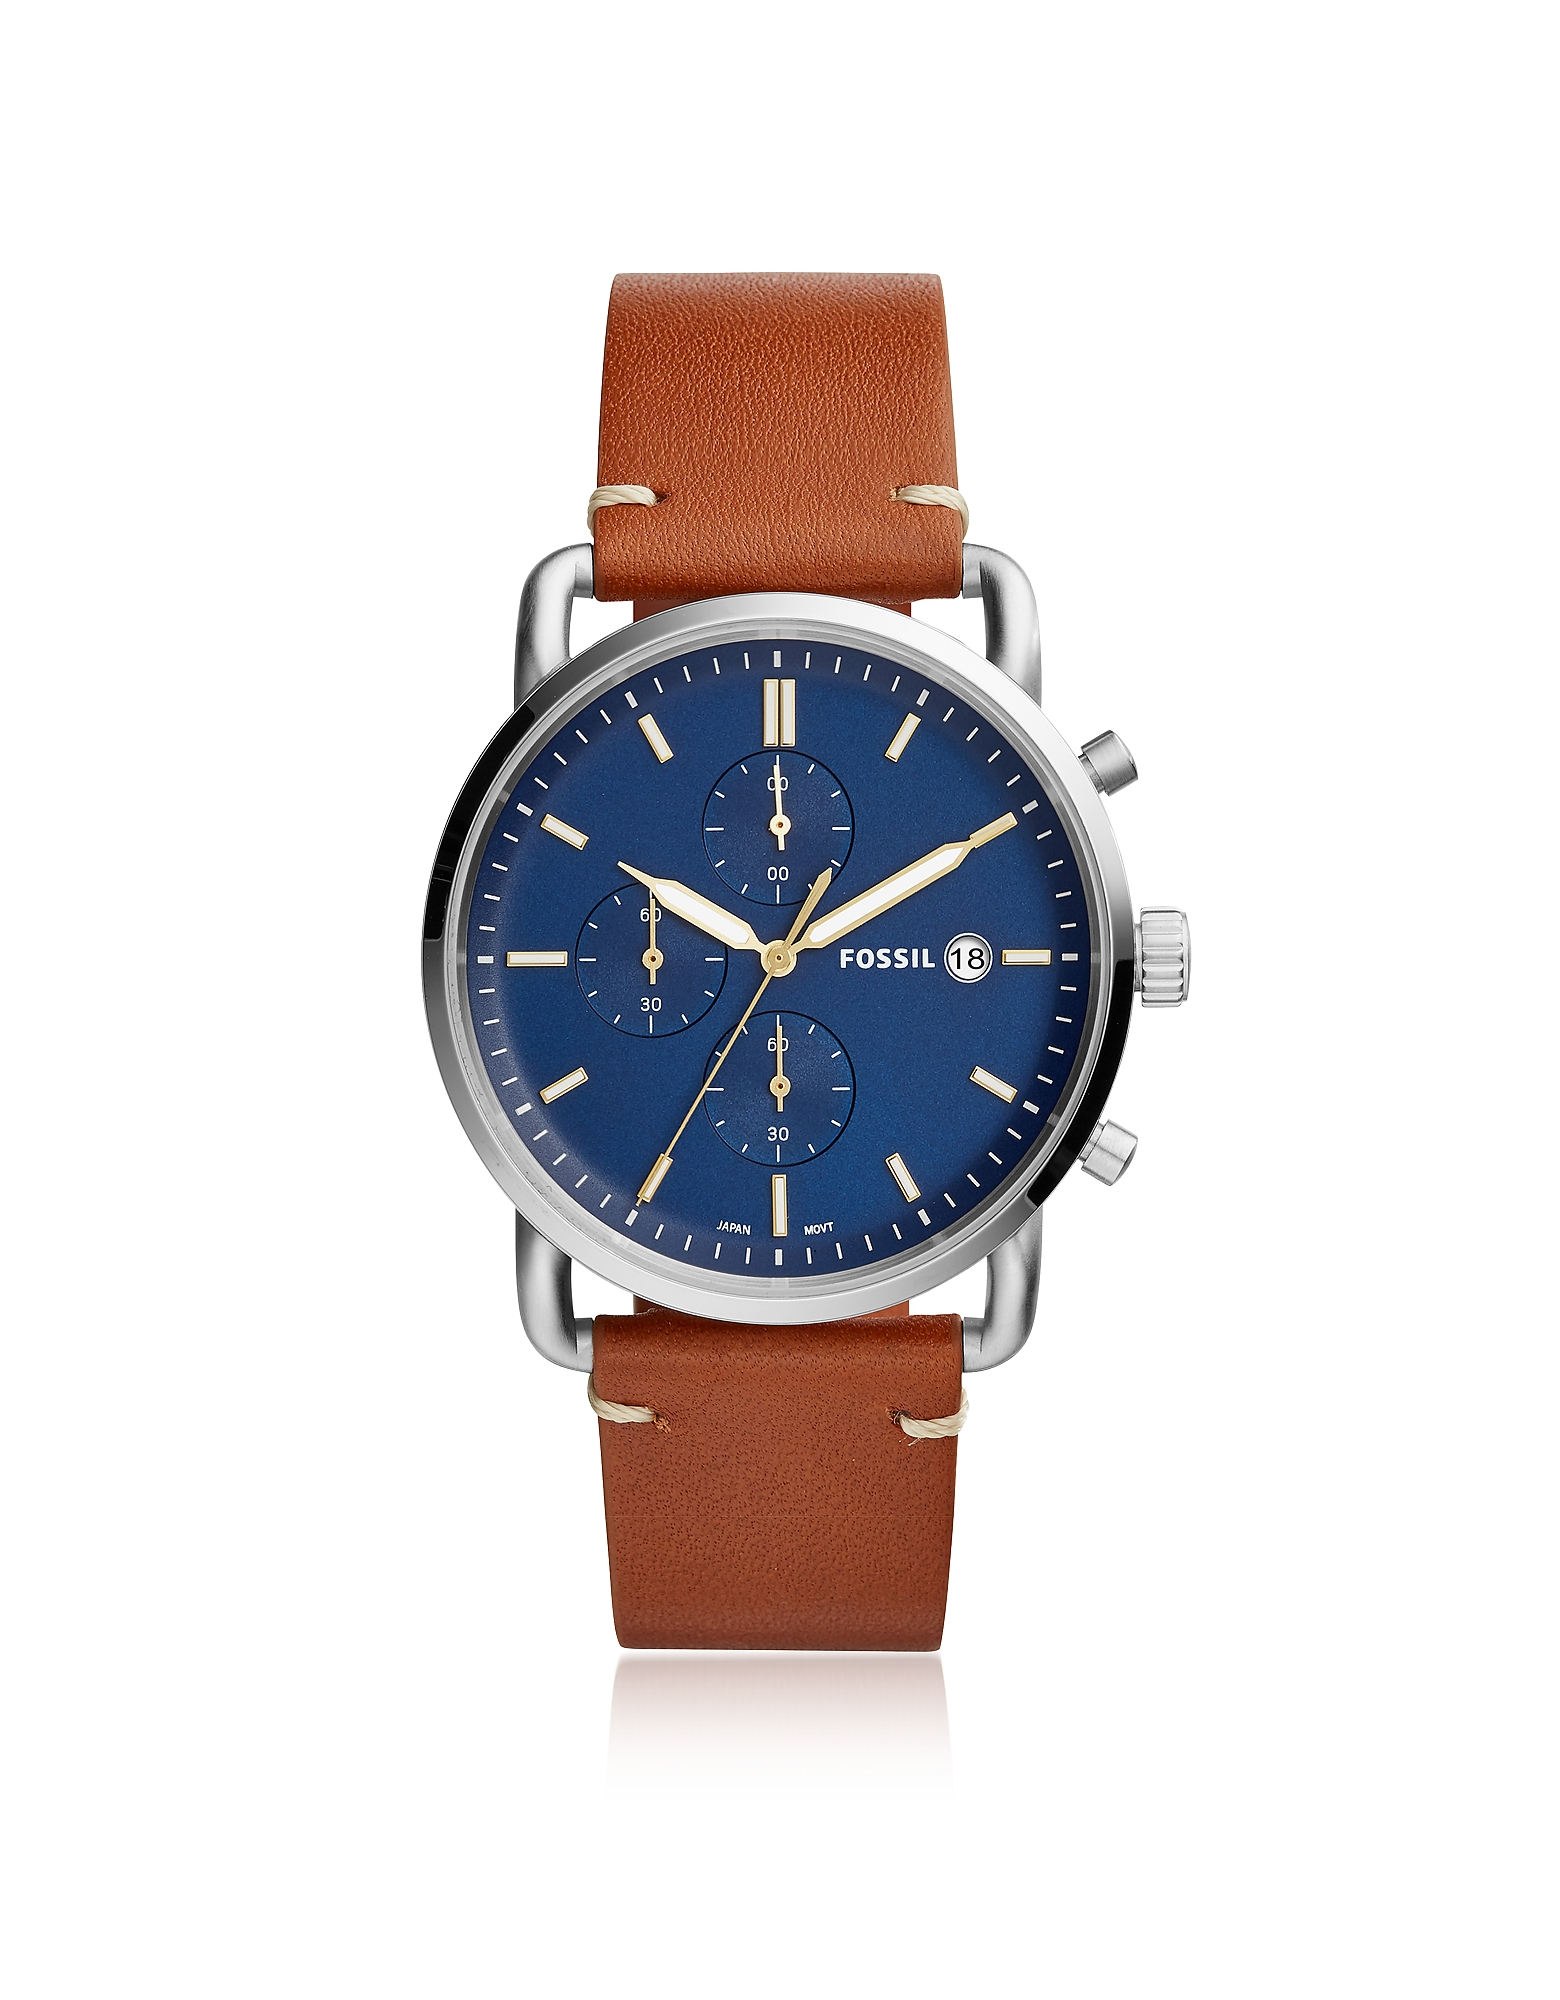 The Commuter Chronograph Light Brown Leather Watch Fossil